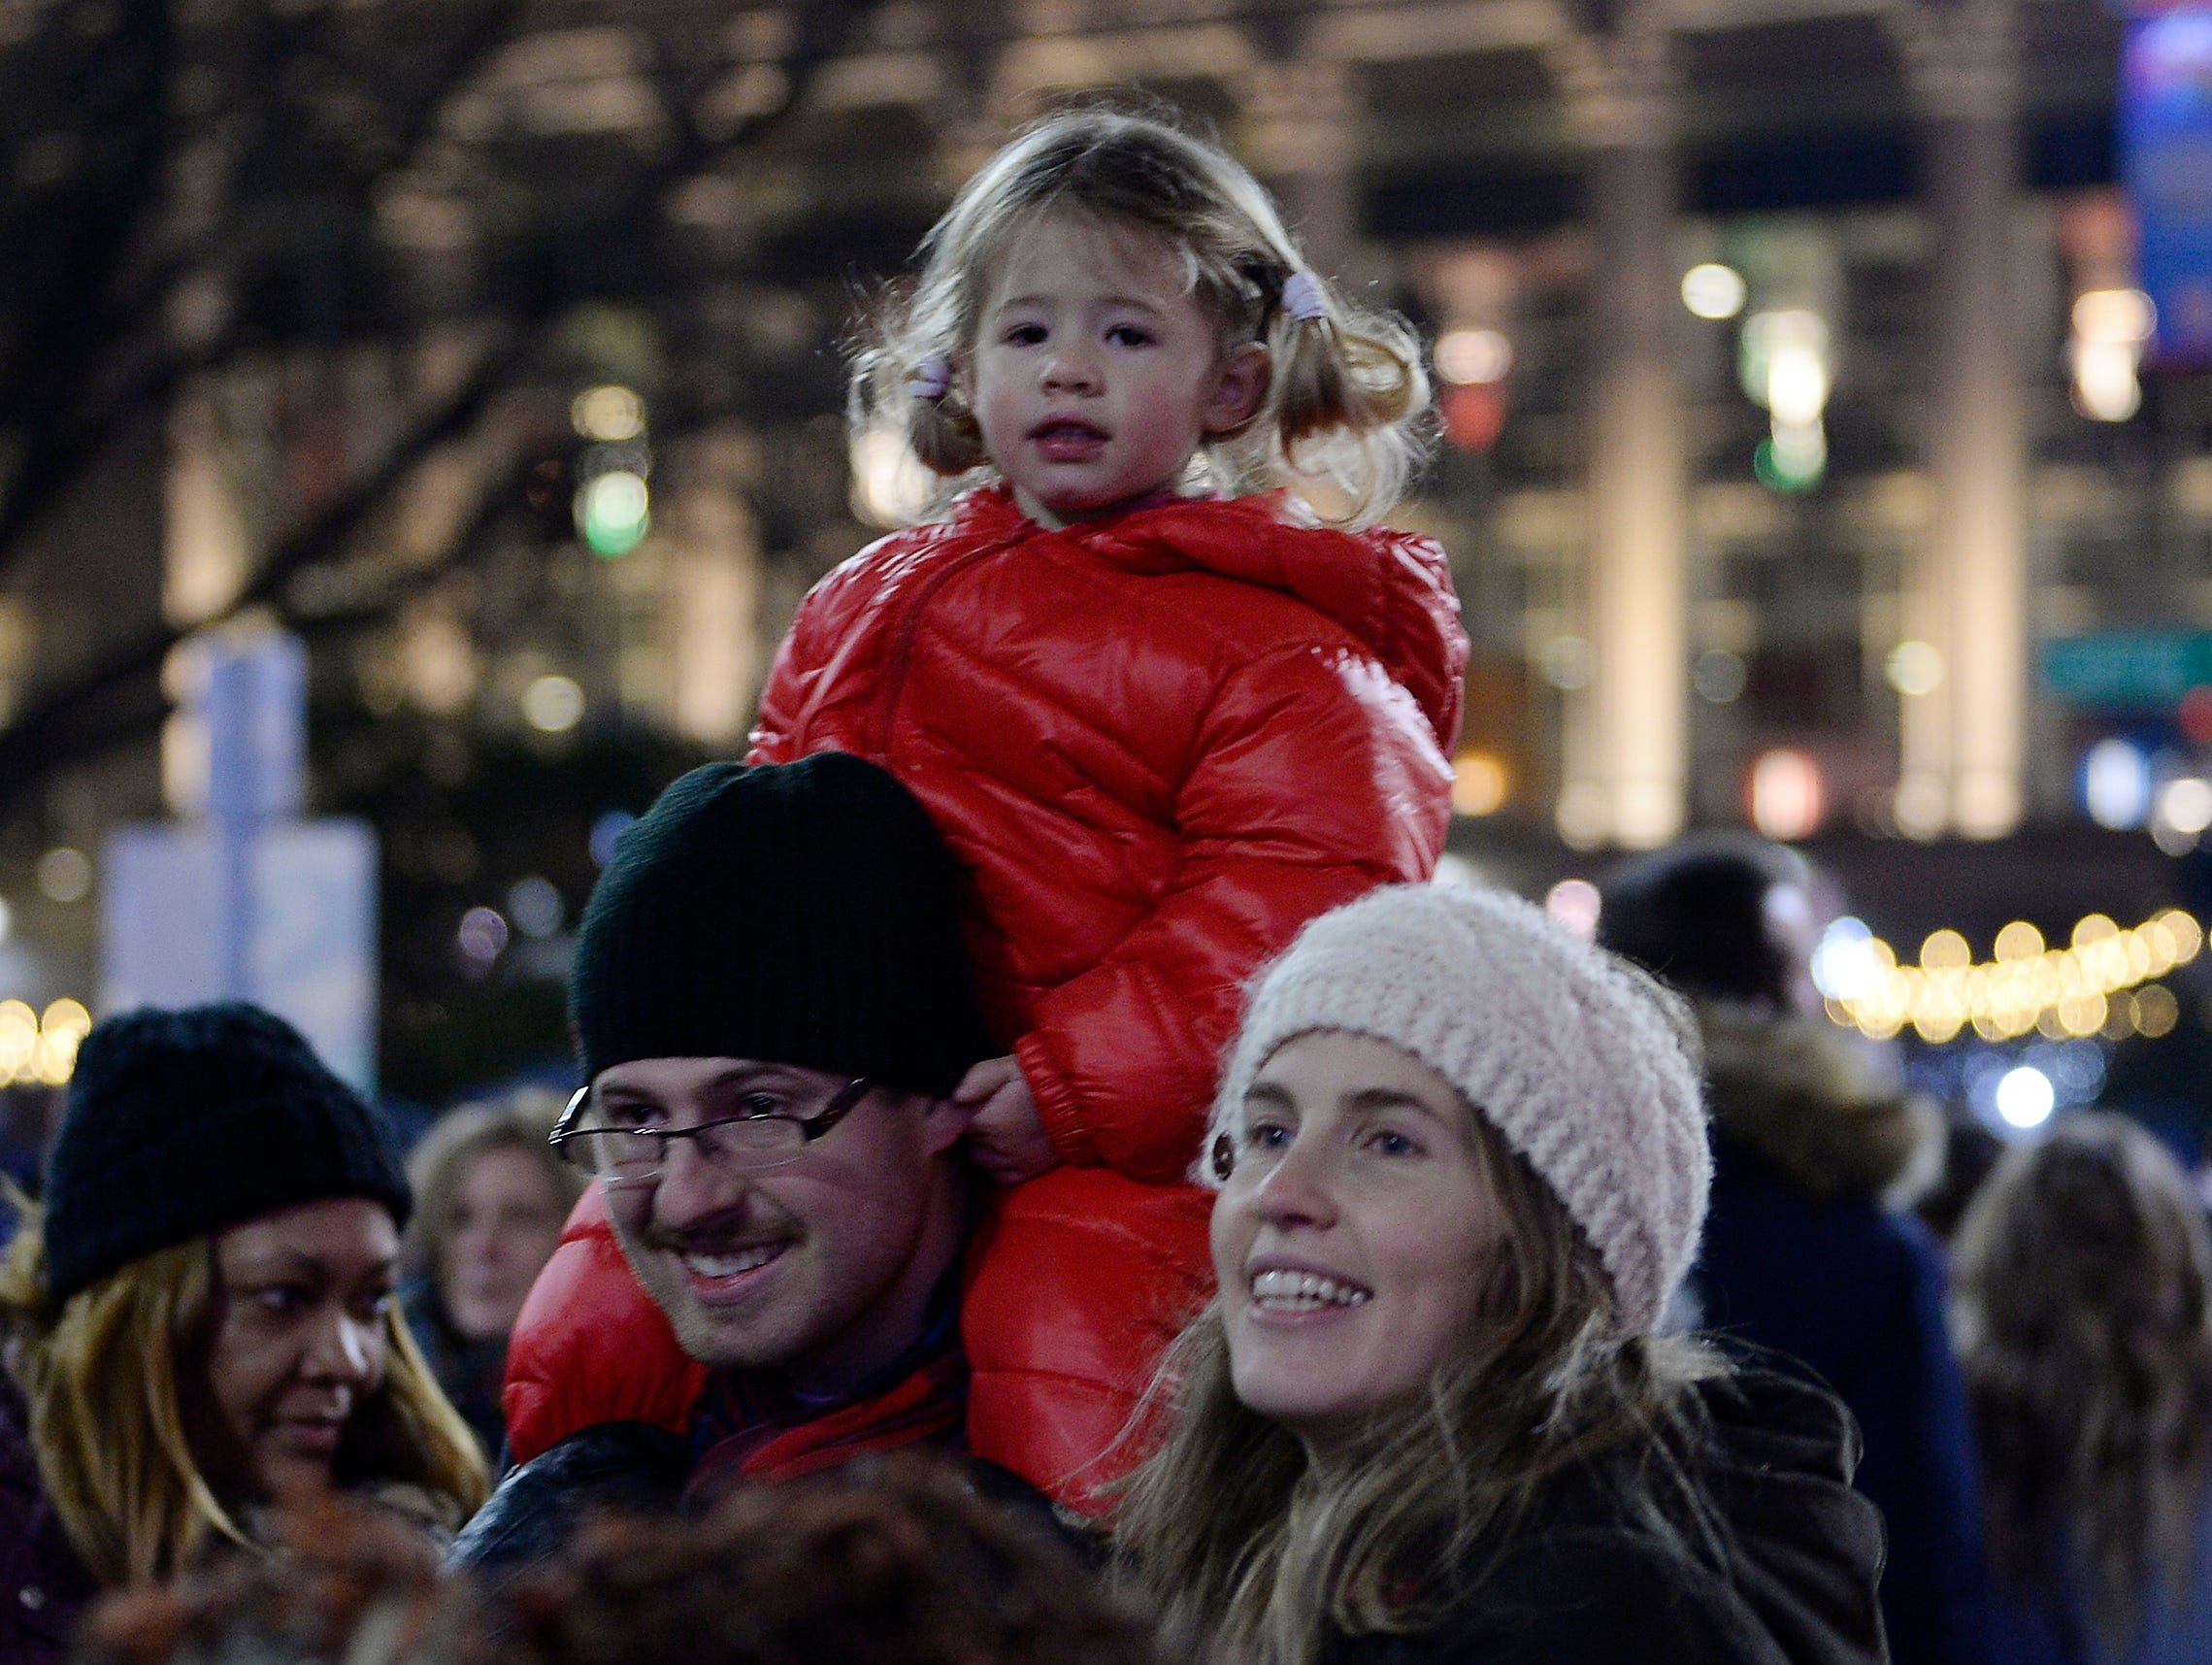 Emma Olney, 2, of Grosse Pointe Farms enjoys the view from dad Stewart Olney's shoulders during the tree lighting ceremony. Her mom, Elizabeth Olney, is to the right.